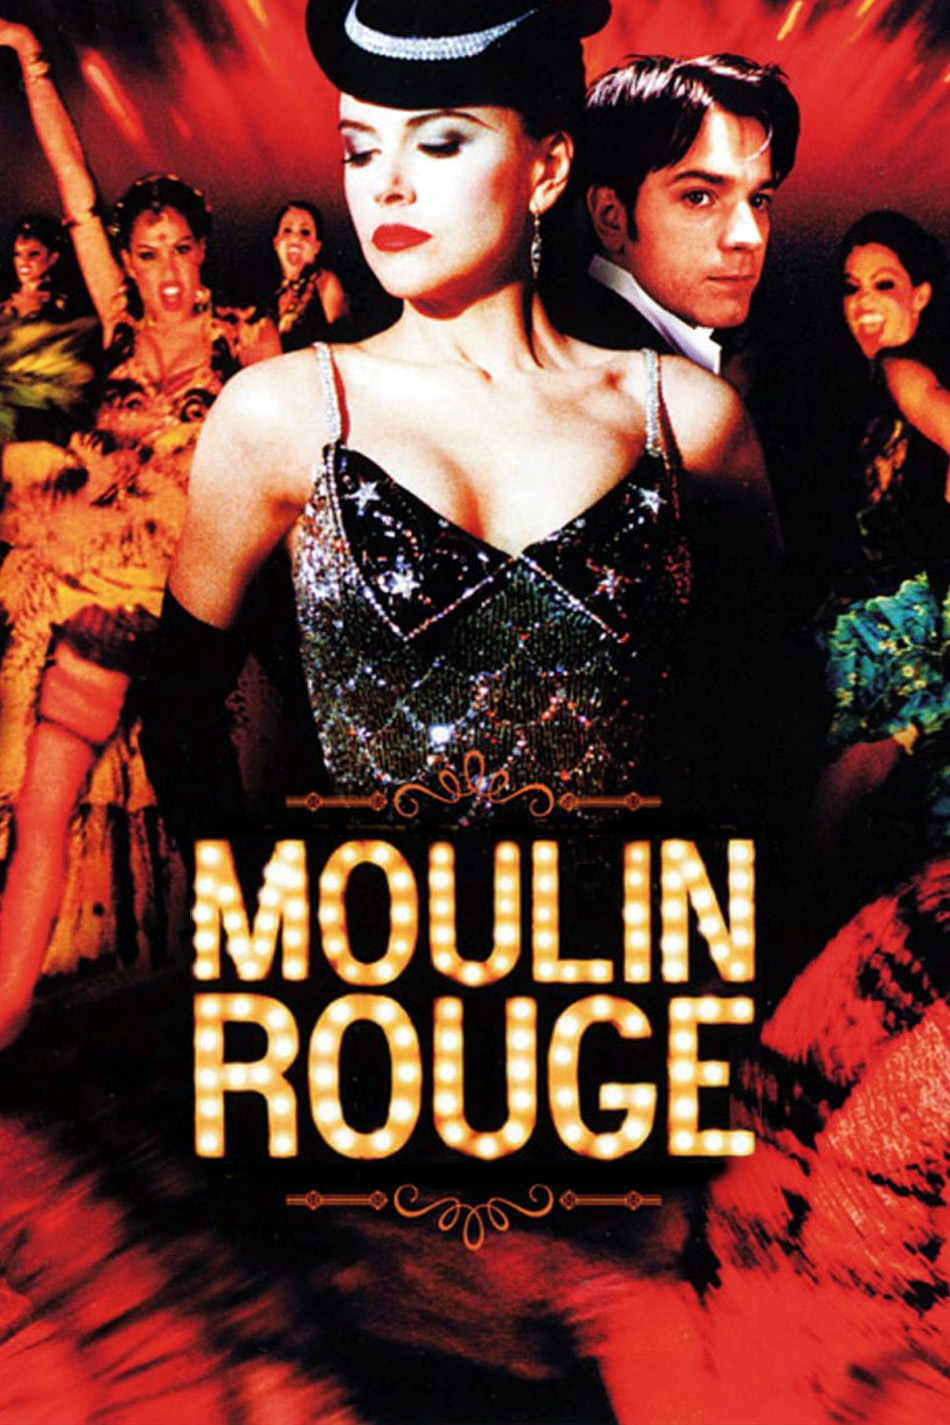 Afbeeldingsresultaat voor the moulin rouge movie